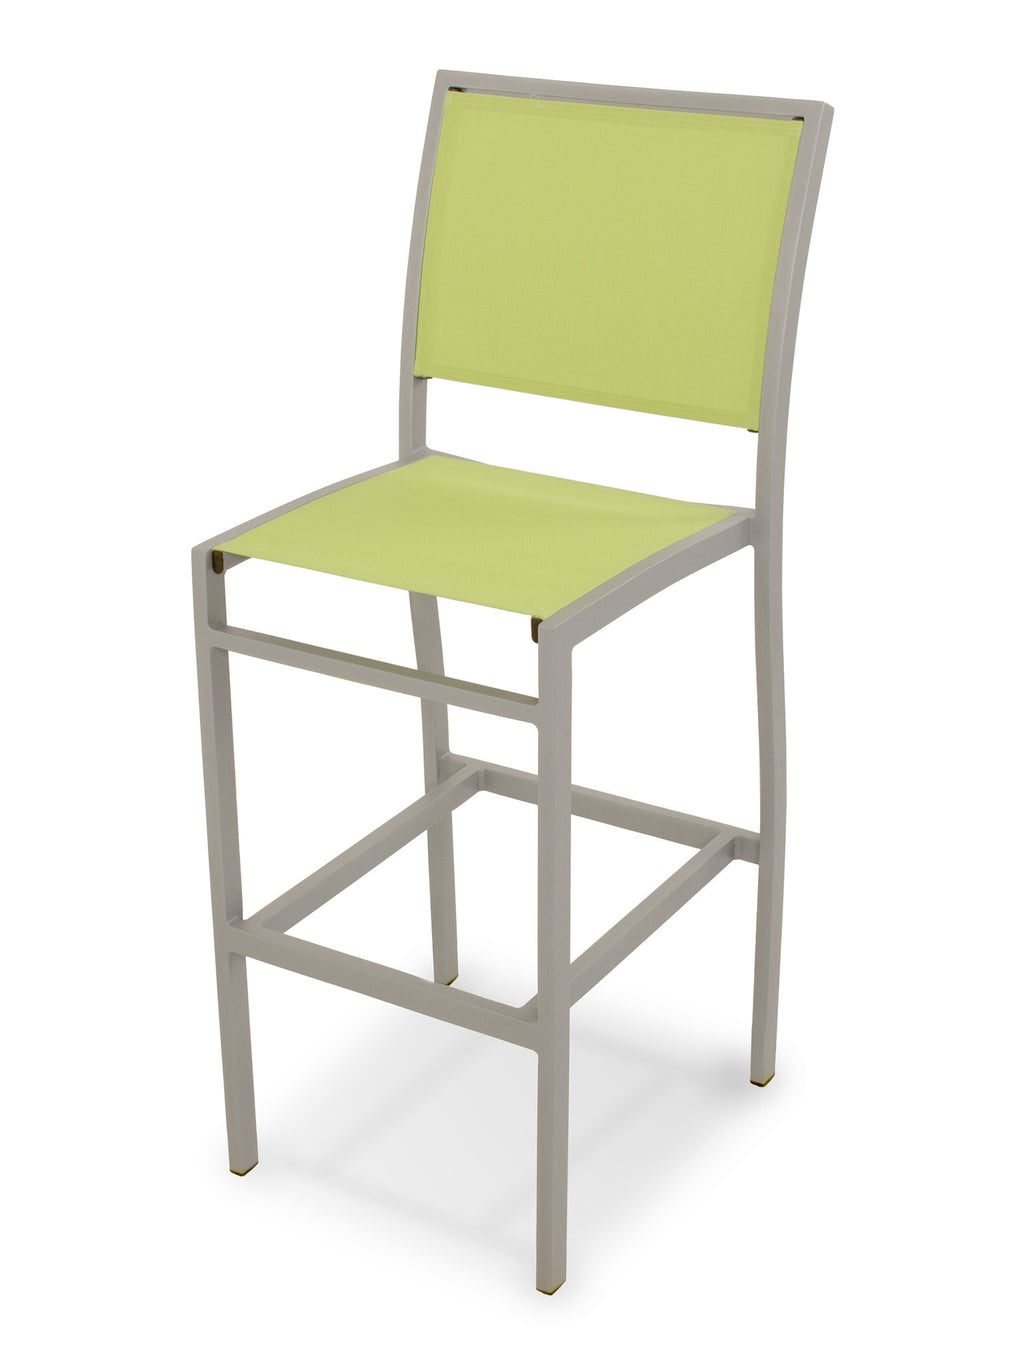 A192-11904 Bayline Bar Side Chair in Textured Silver with an Avocado Sling